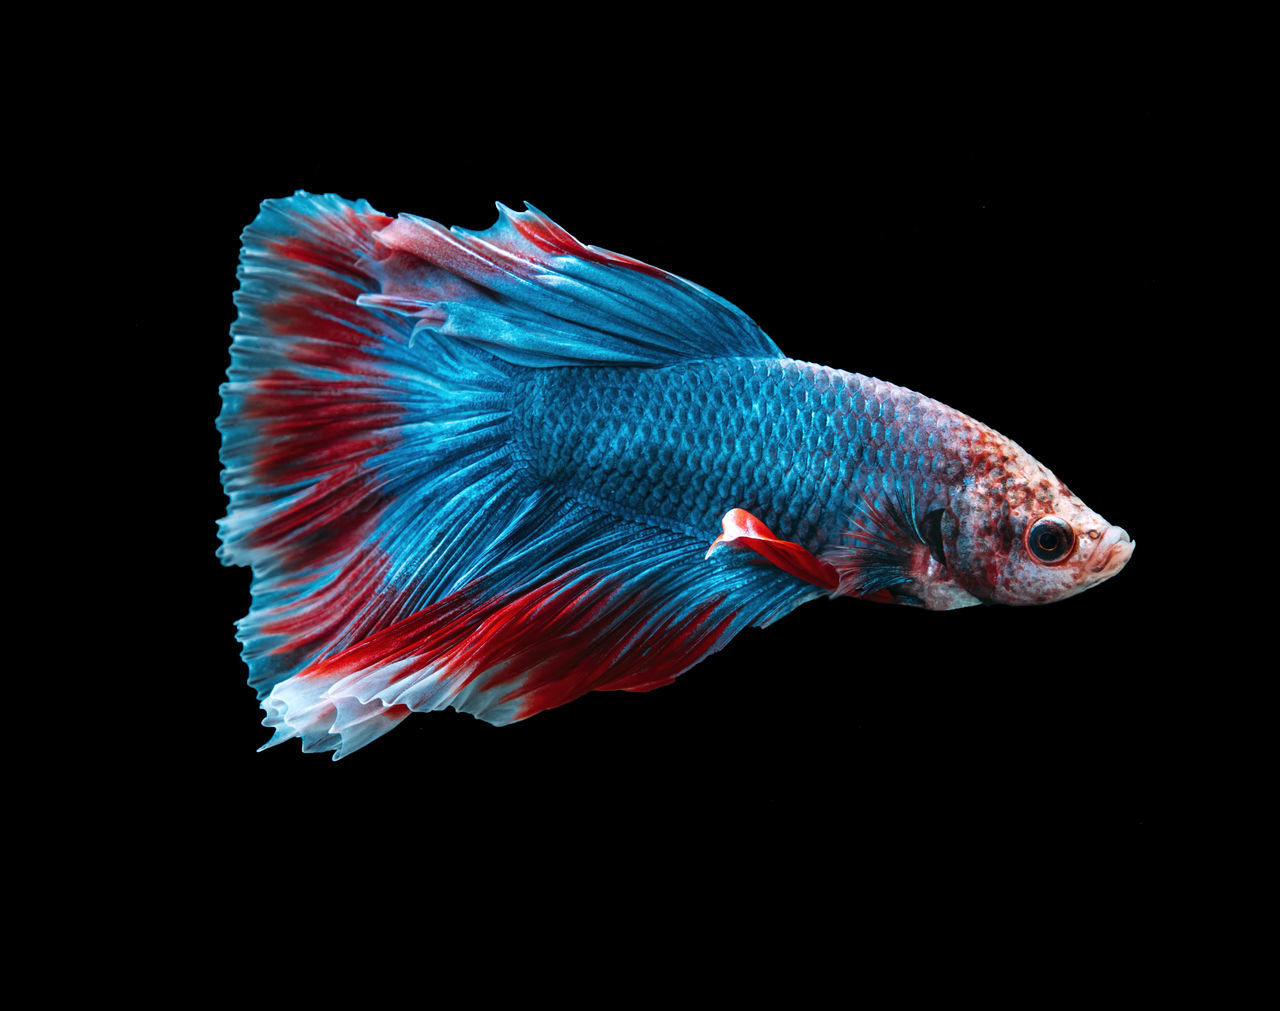 Animal Animal Themes Animals In Captivity Aquarium Betta Fish Black Background Close-up Copy Space Fighter Full Length Male Animal No People One Animal Pets Studio Shot Swimming Water